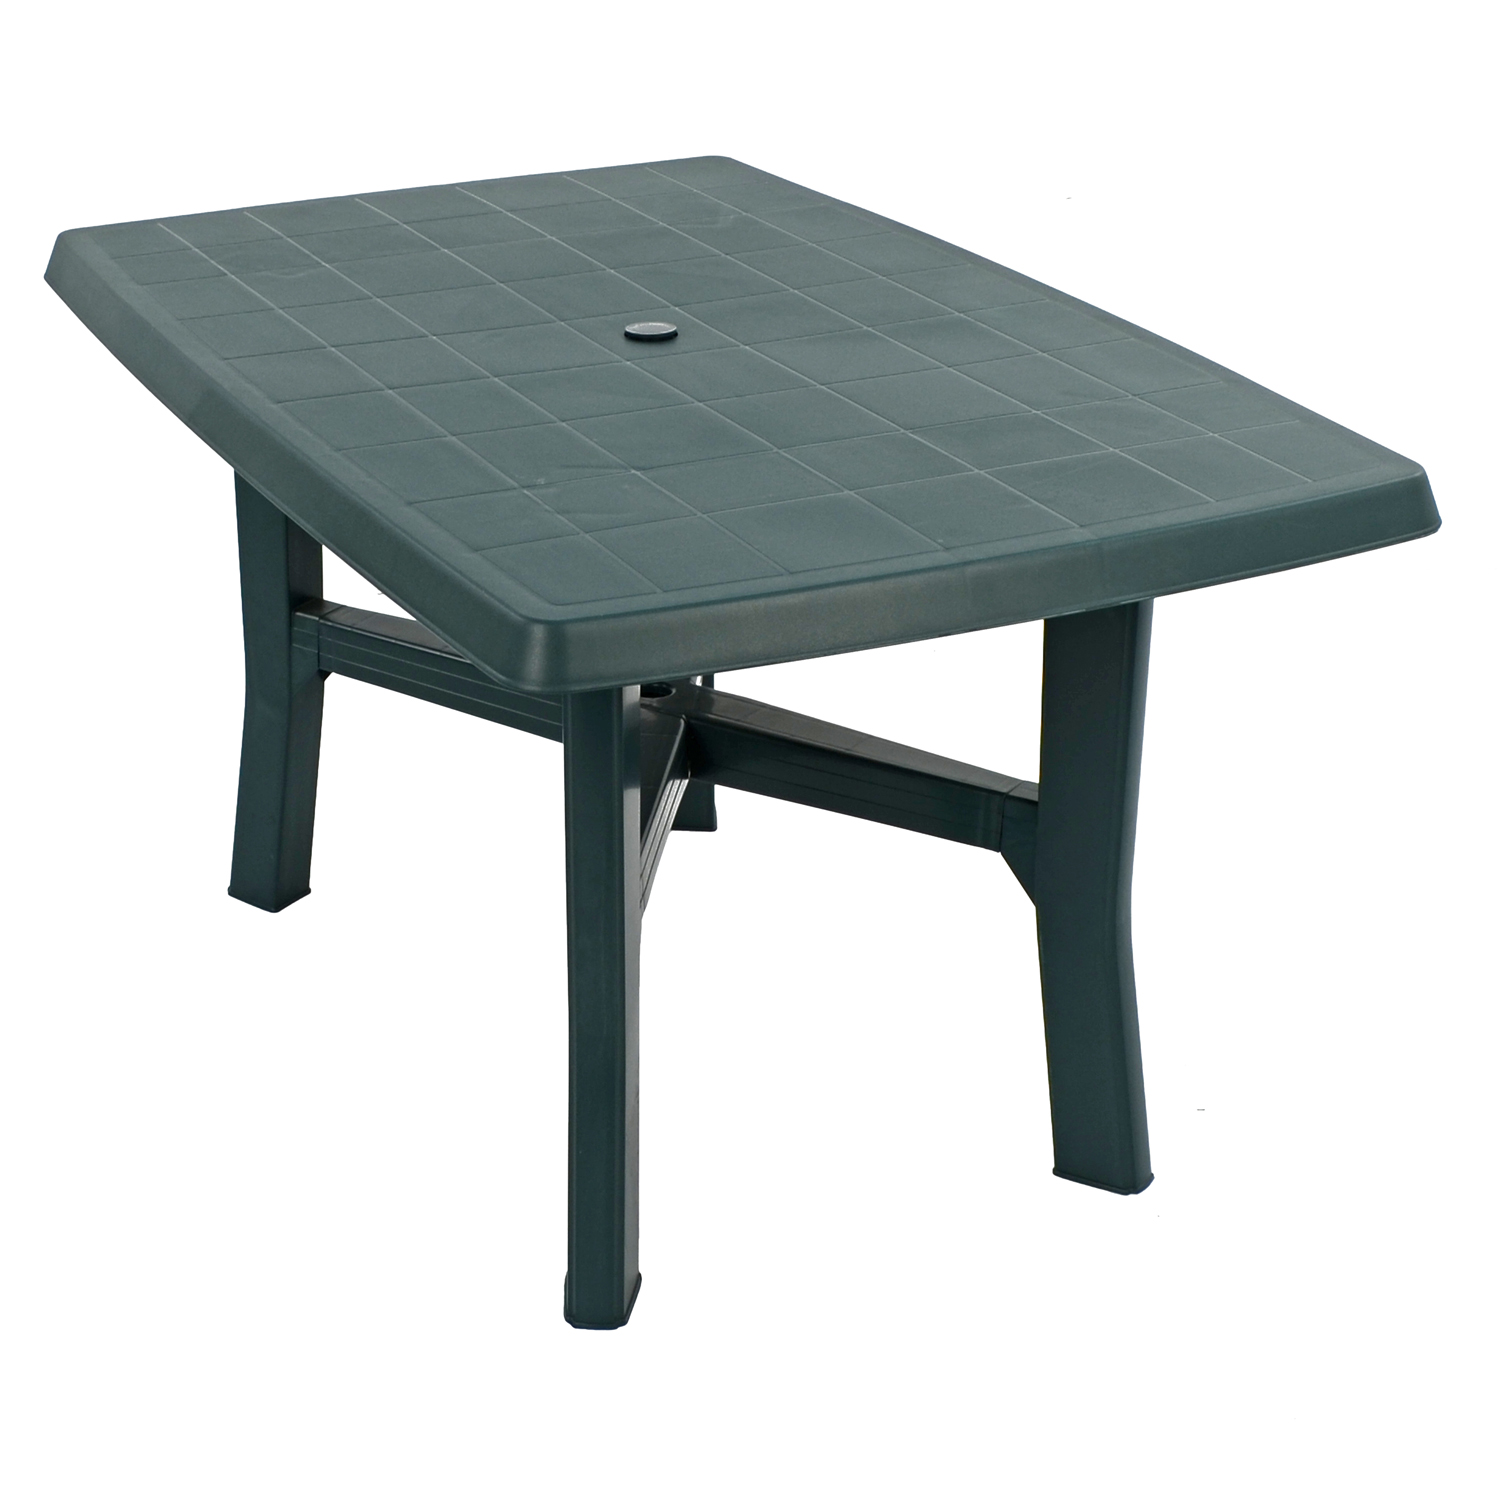 TARANTO 4 TABLE GREEN